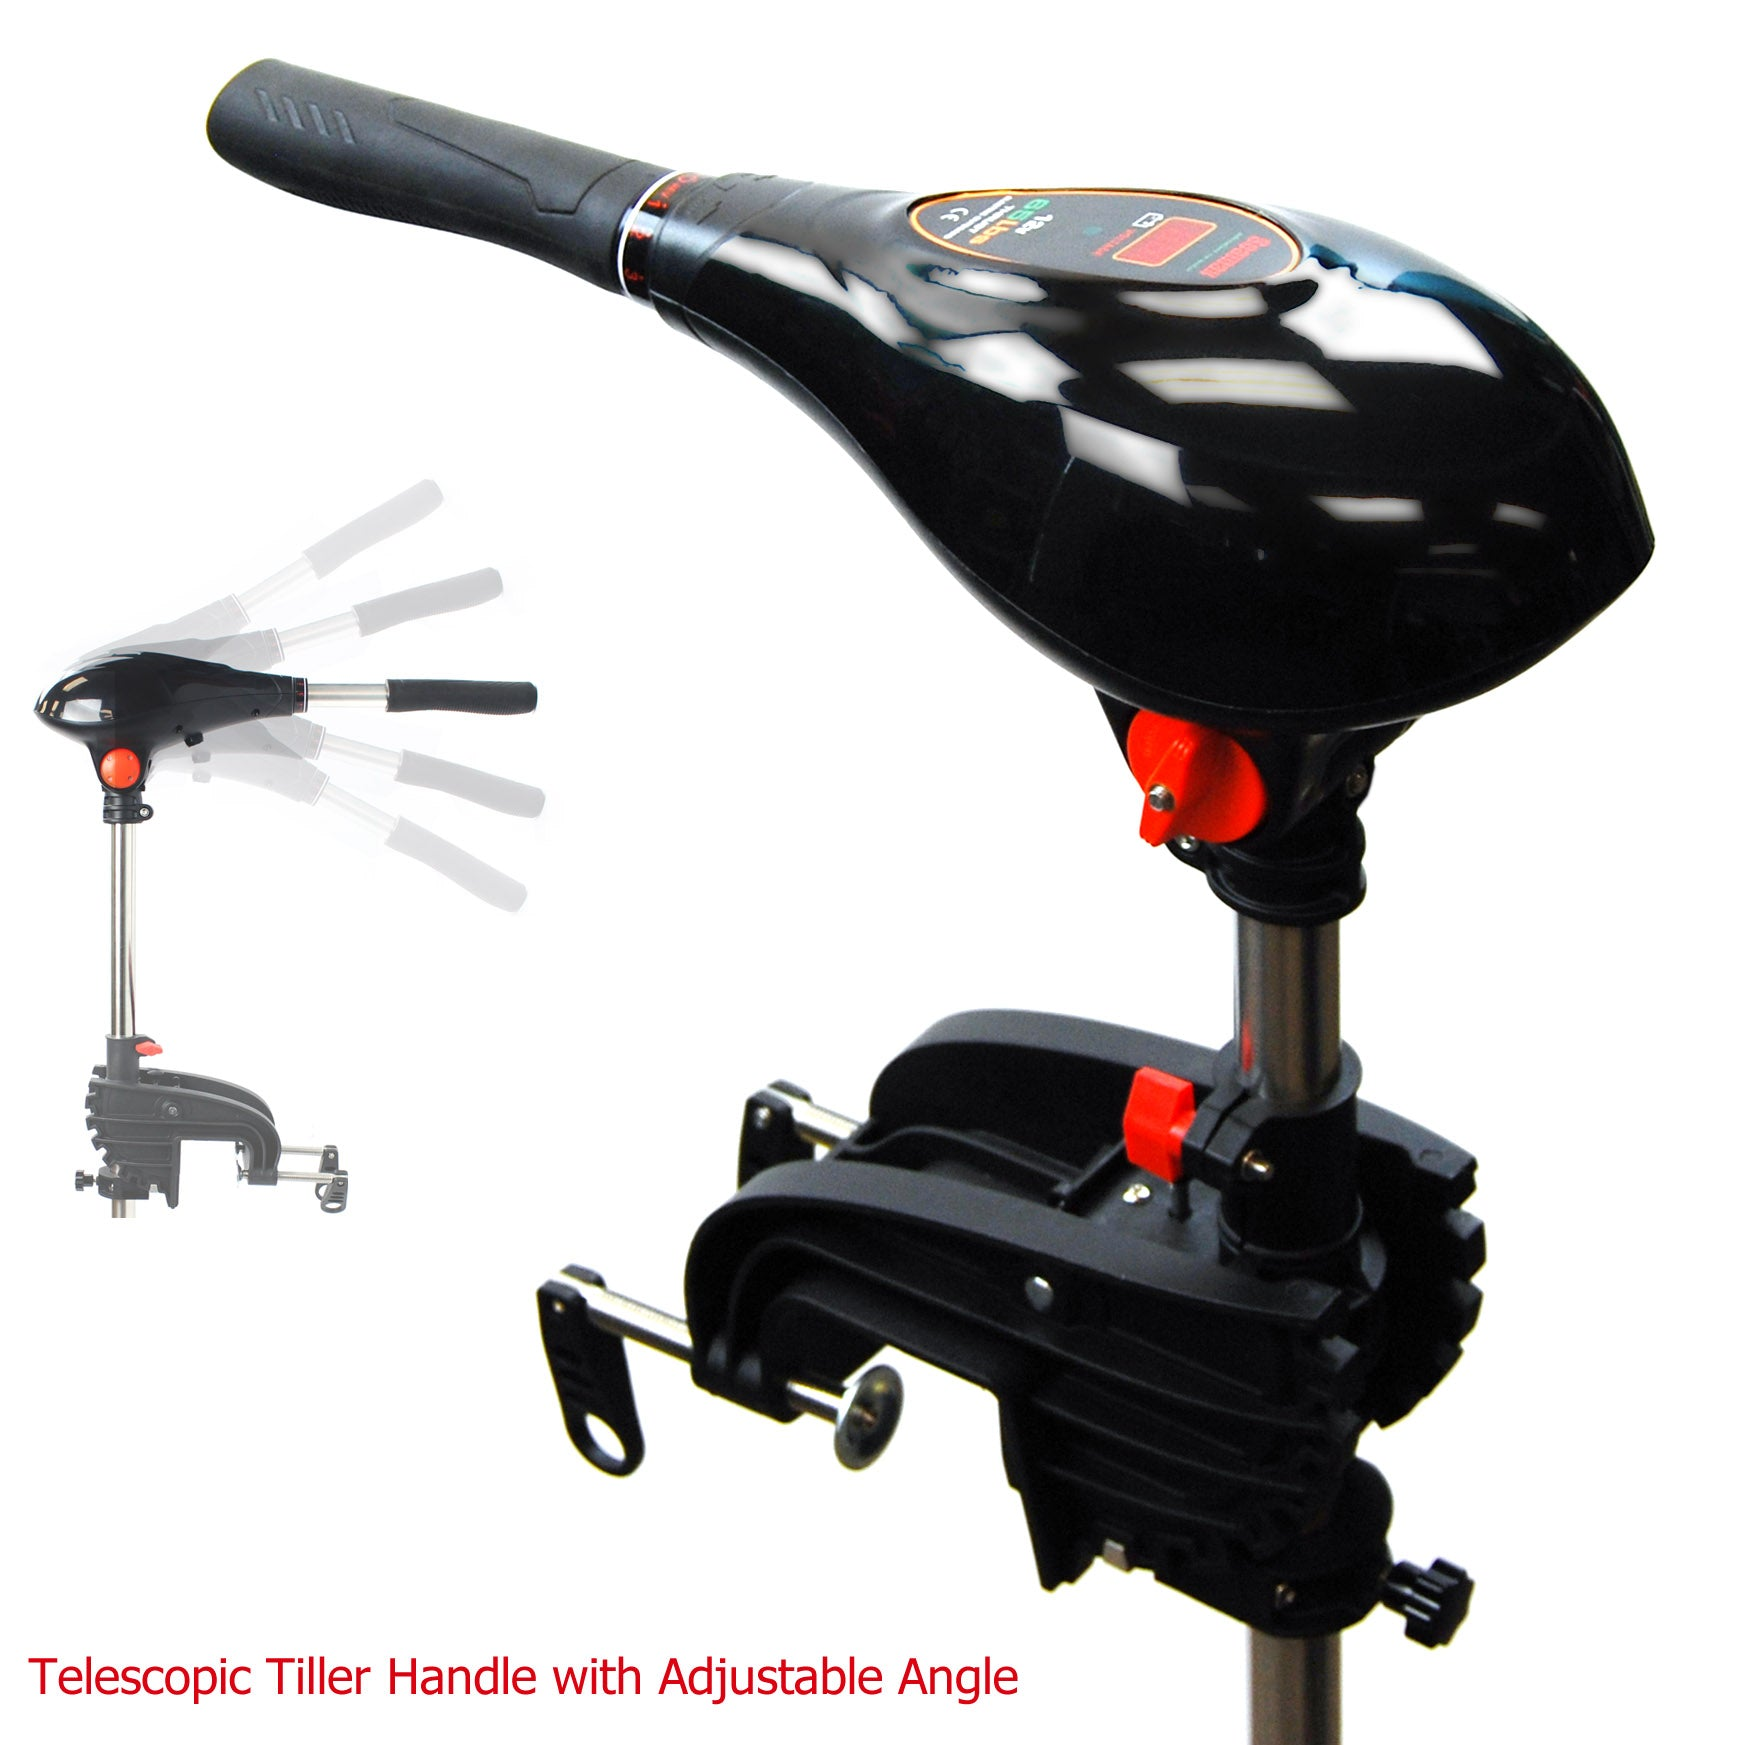 Seamax 12V SpeedMax Electric Trolling Motor With 32 Inches Shaft 55 To 65 Lbs Thrust